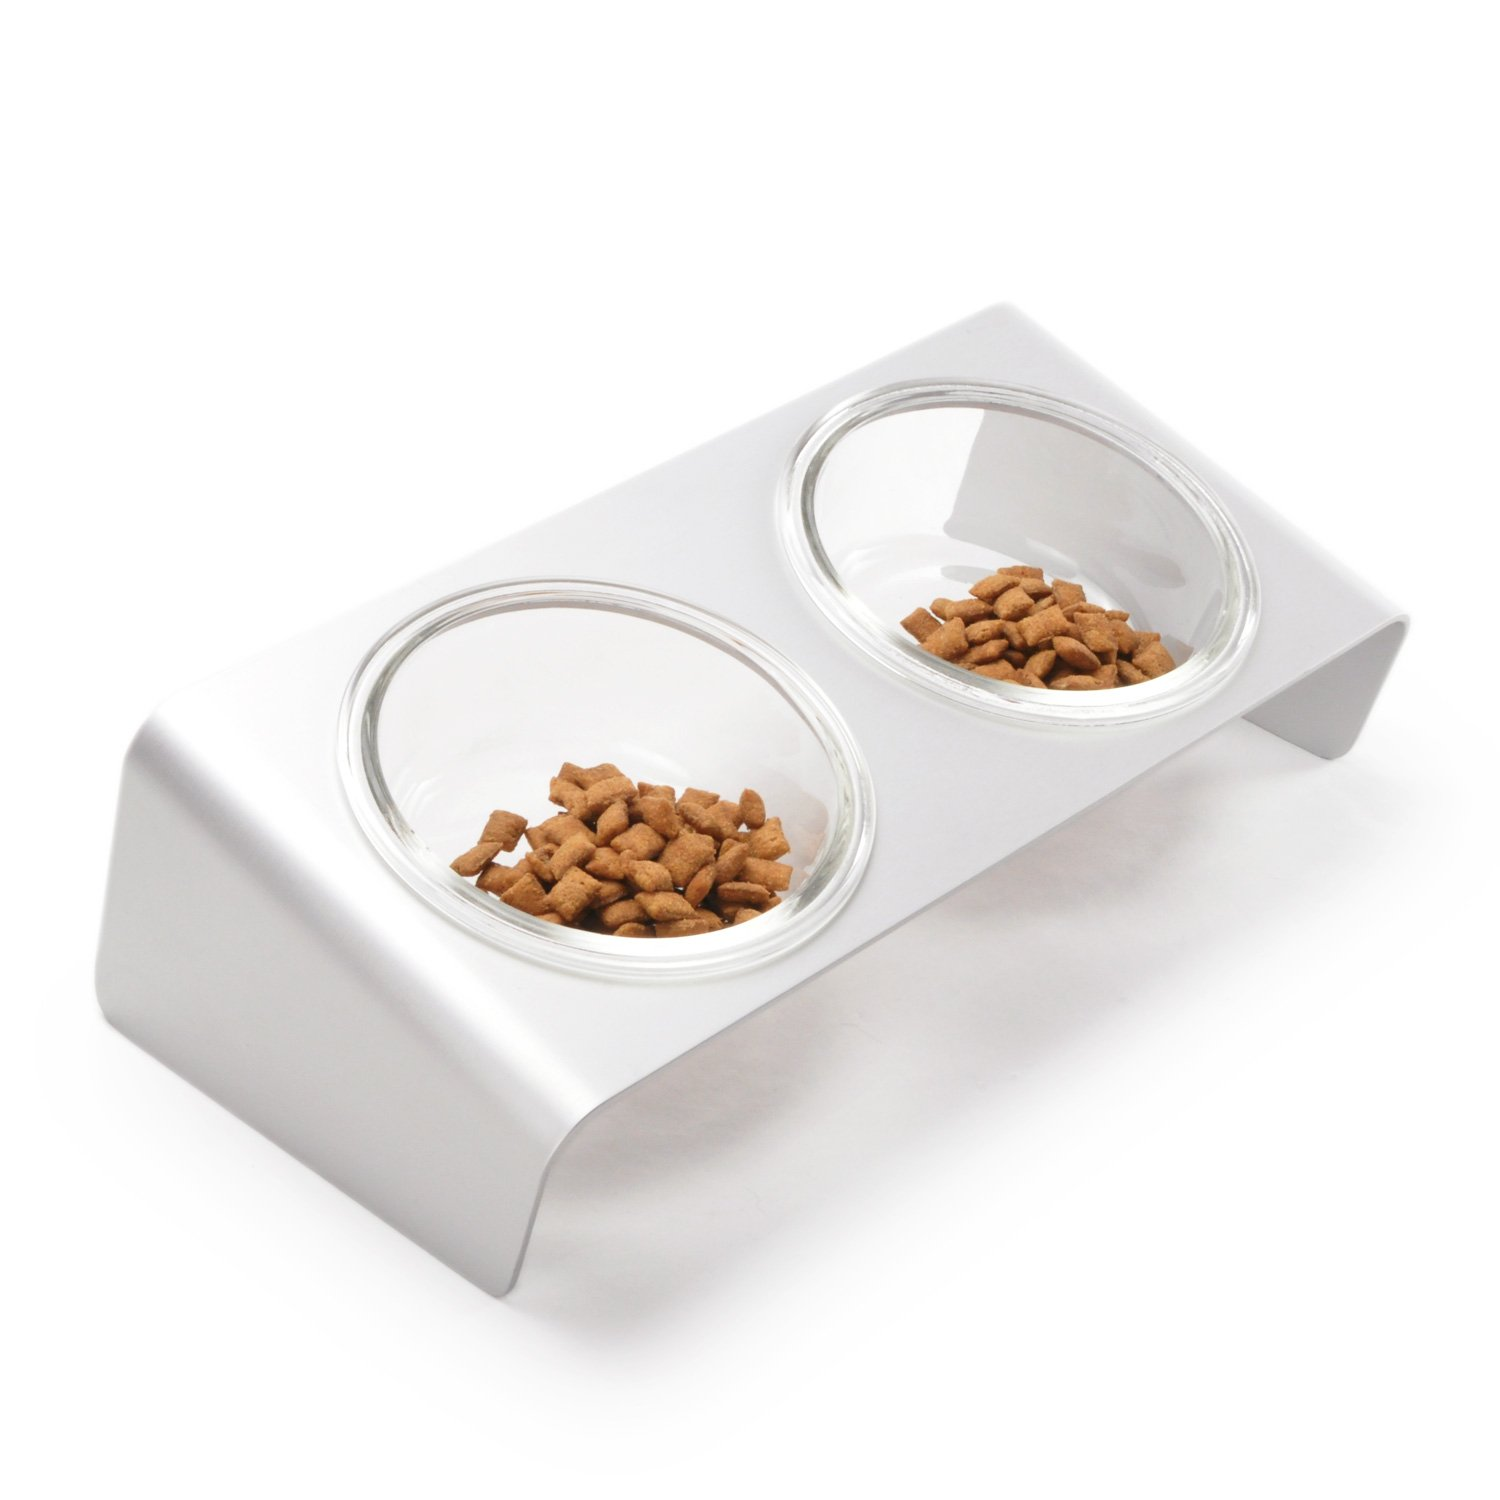 4CLAWS Elevated Cat Feeder with Glass Bowls by 4CLAWS